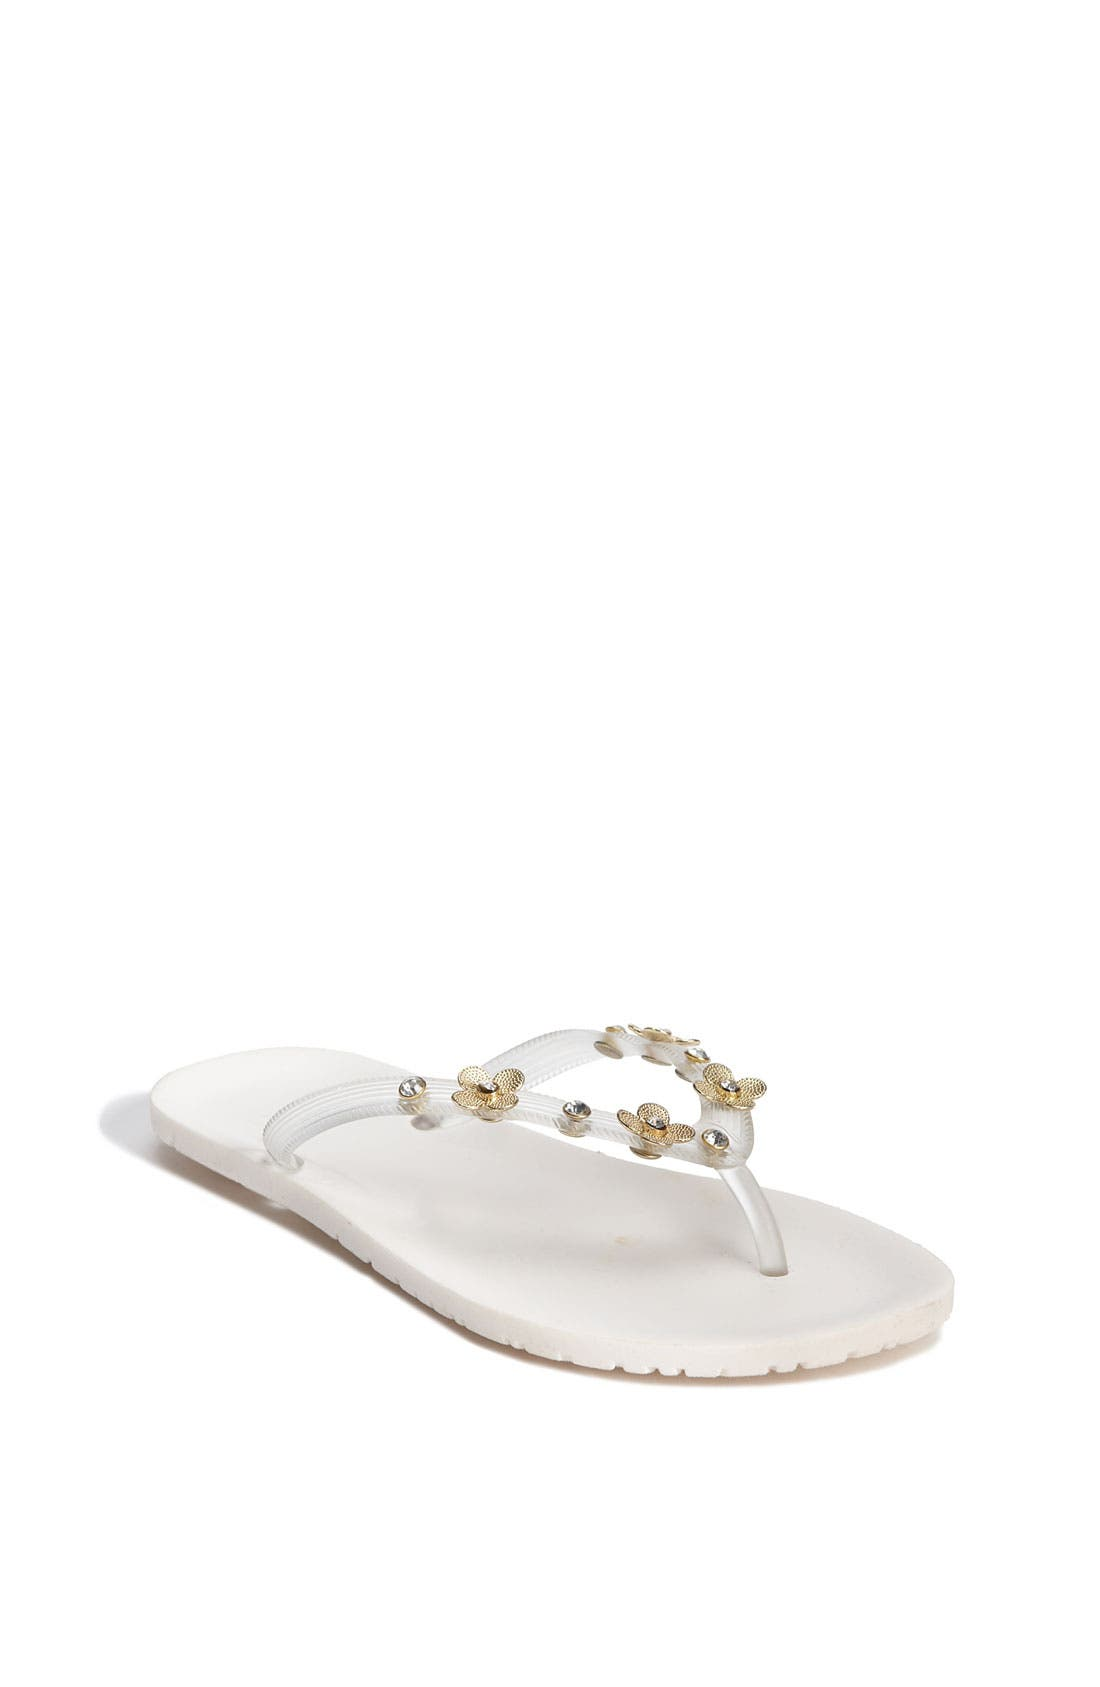 Alternate Image 1 Selected - Stuart Weitzman 'Meadow' Sandal (Toddler, Little Kid & Big Kid)